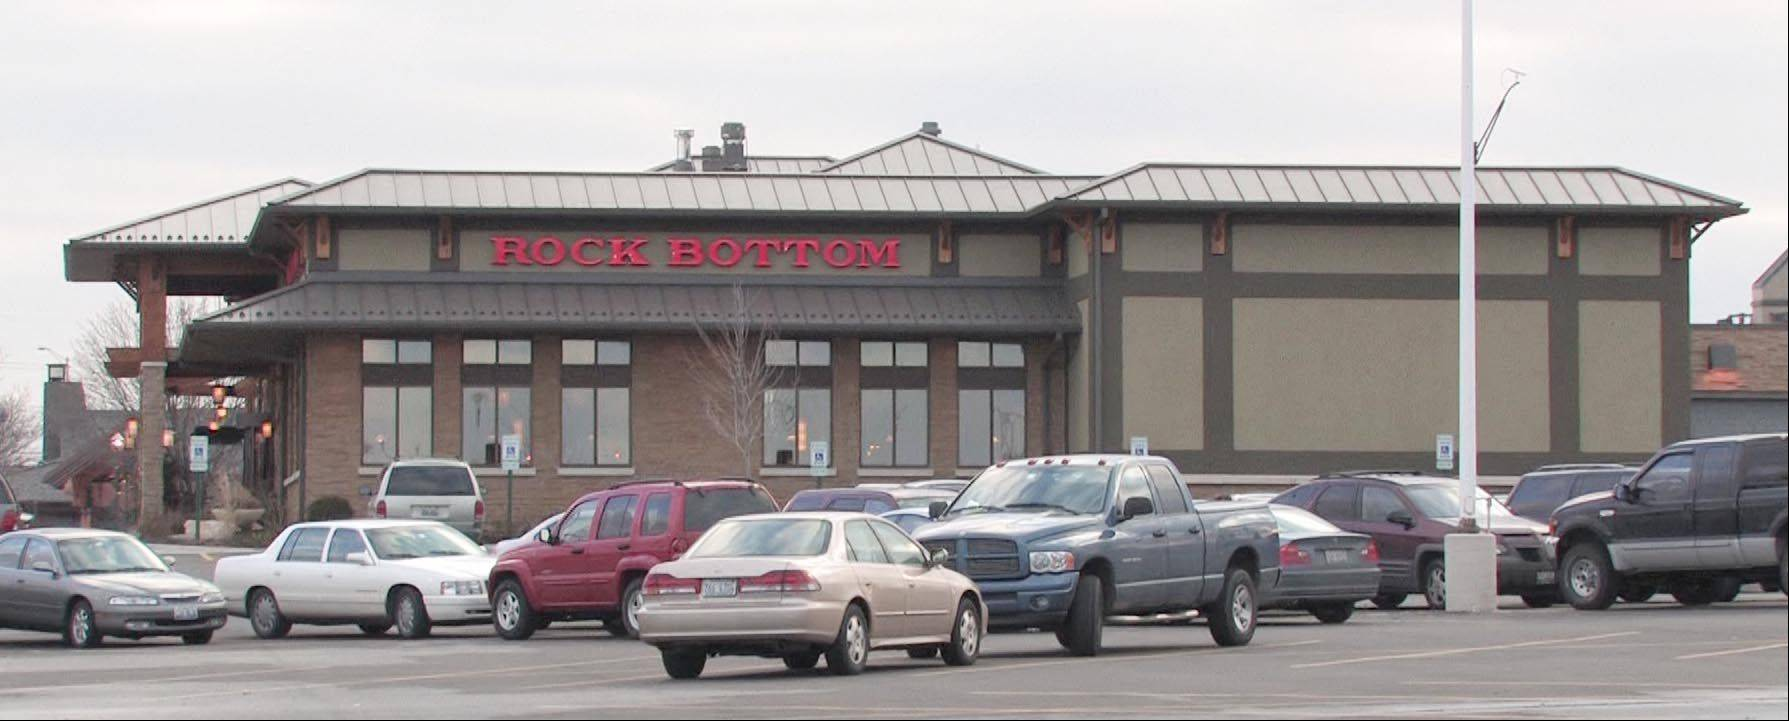 The Rock Bottom Brewery in Lombard is the only one of 37 locations across the country unable to sell kegs of its house-brewed beer, but the Lombard village board may loosen regulations during a meeting at 7:30 p.m. Thursday, Jan. 3.